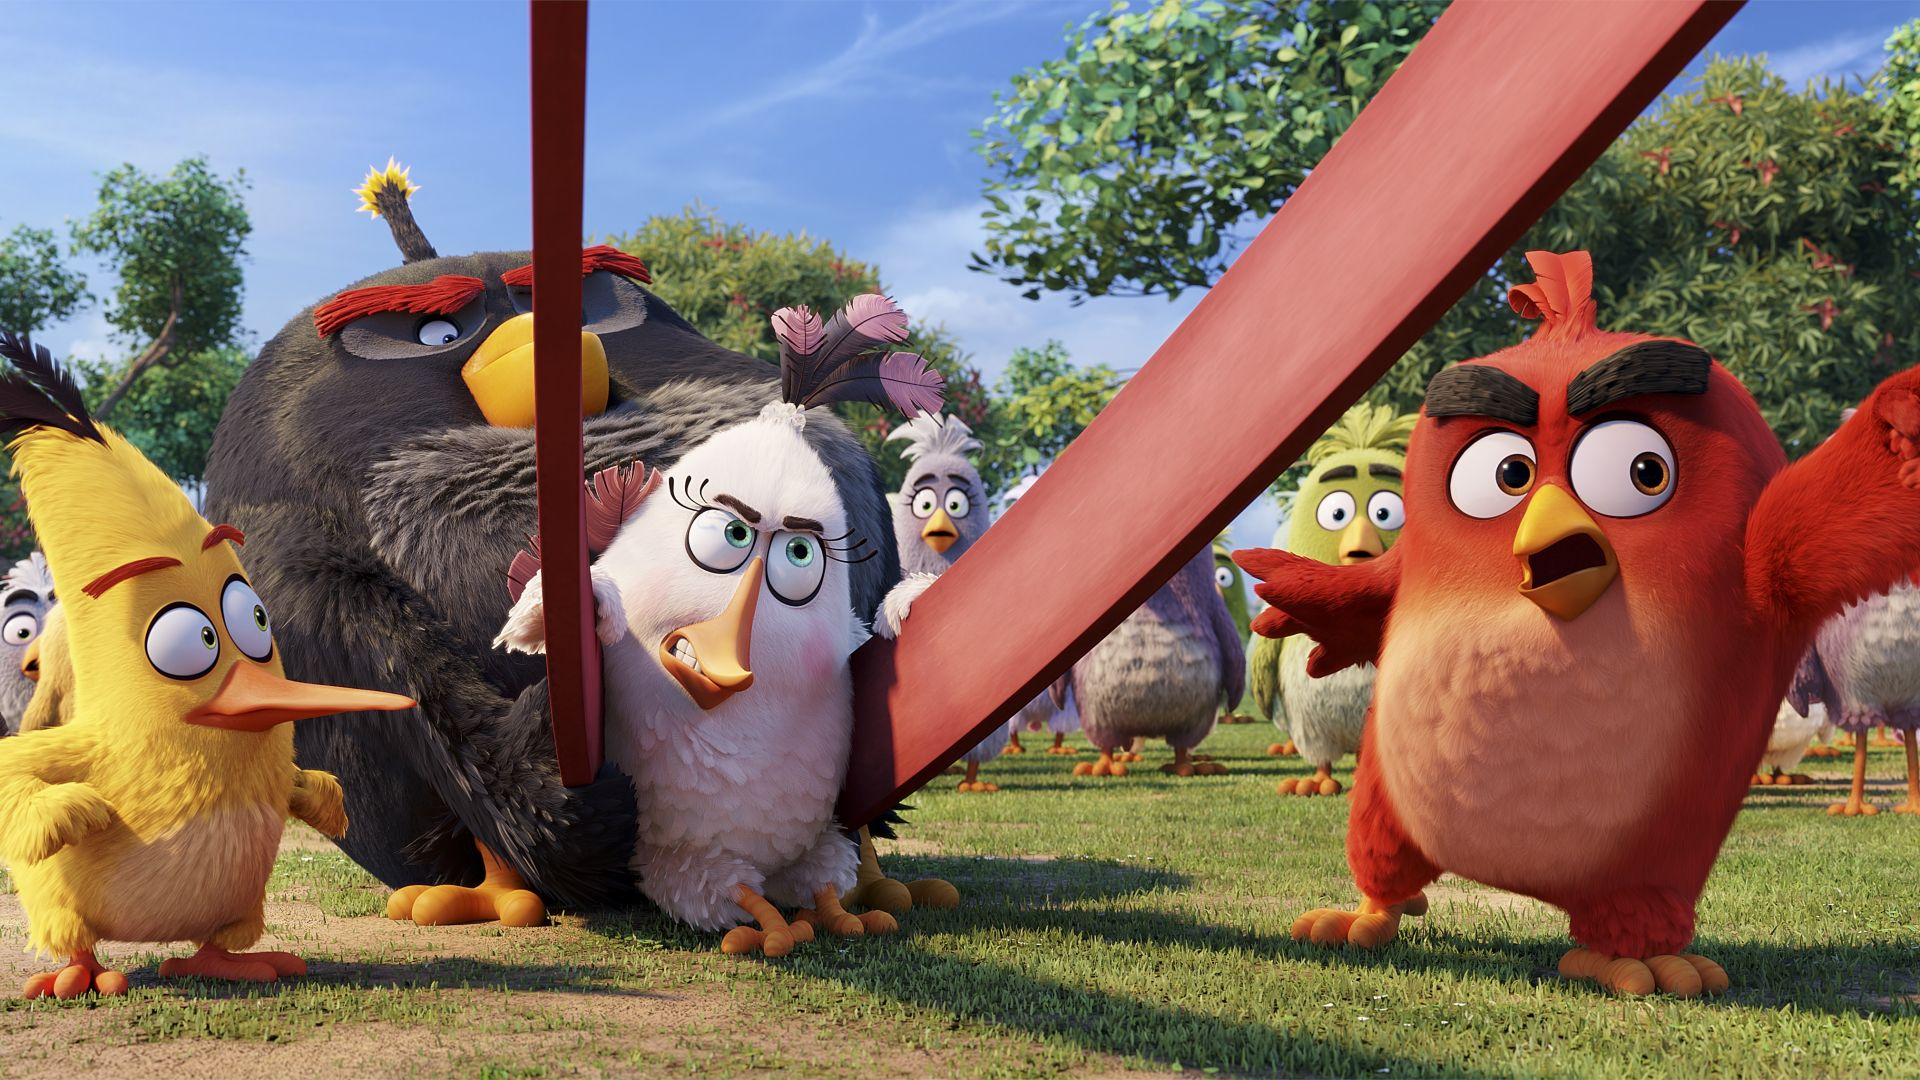 Wallpaper Angry Birds Movie, chuck, red, bomb, Best Animation Movies of 2016, Movies #8573 - 웹